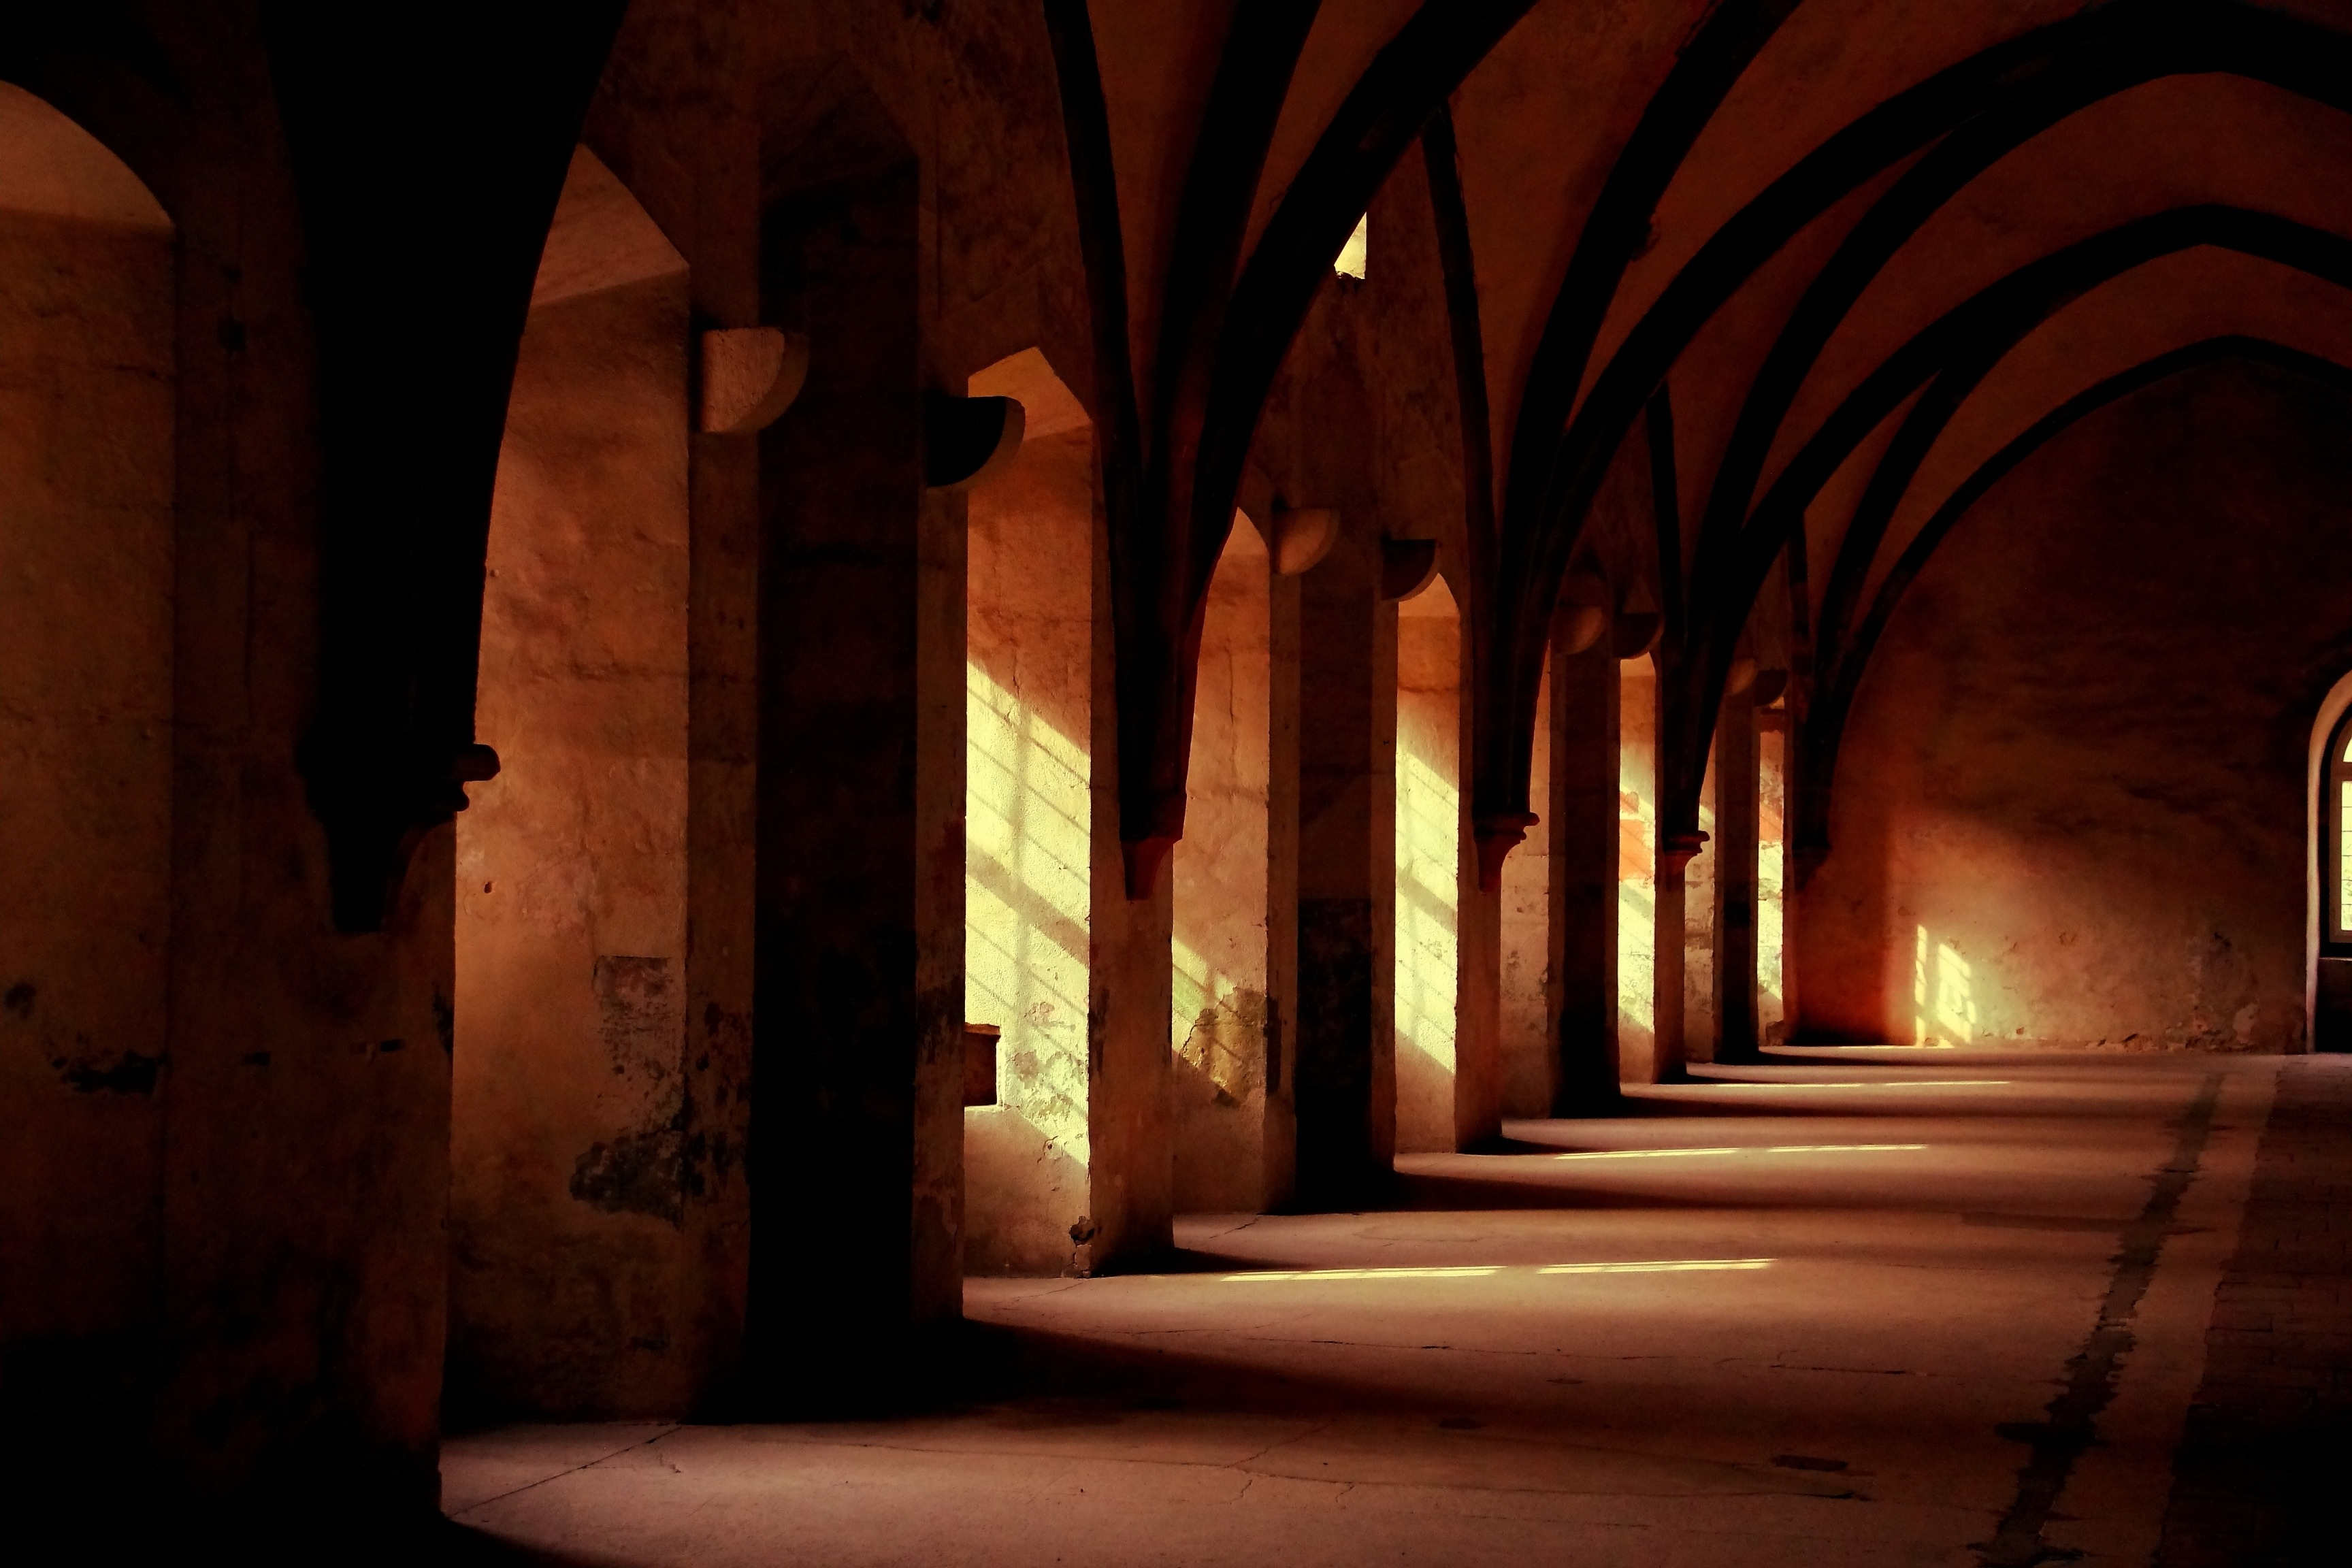 Medieval gallery, sun, light, gallery, arches, arches, arch, cathedral